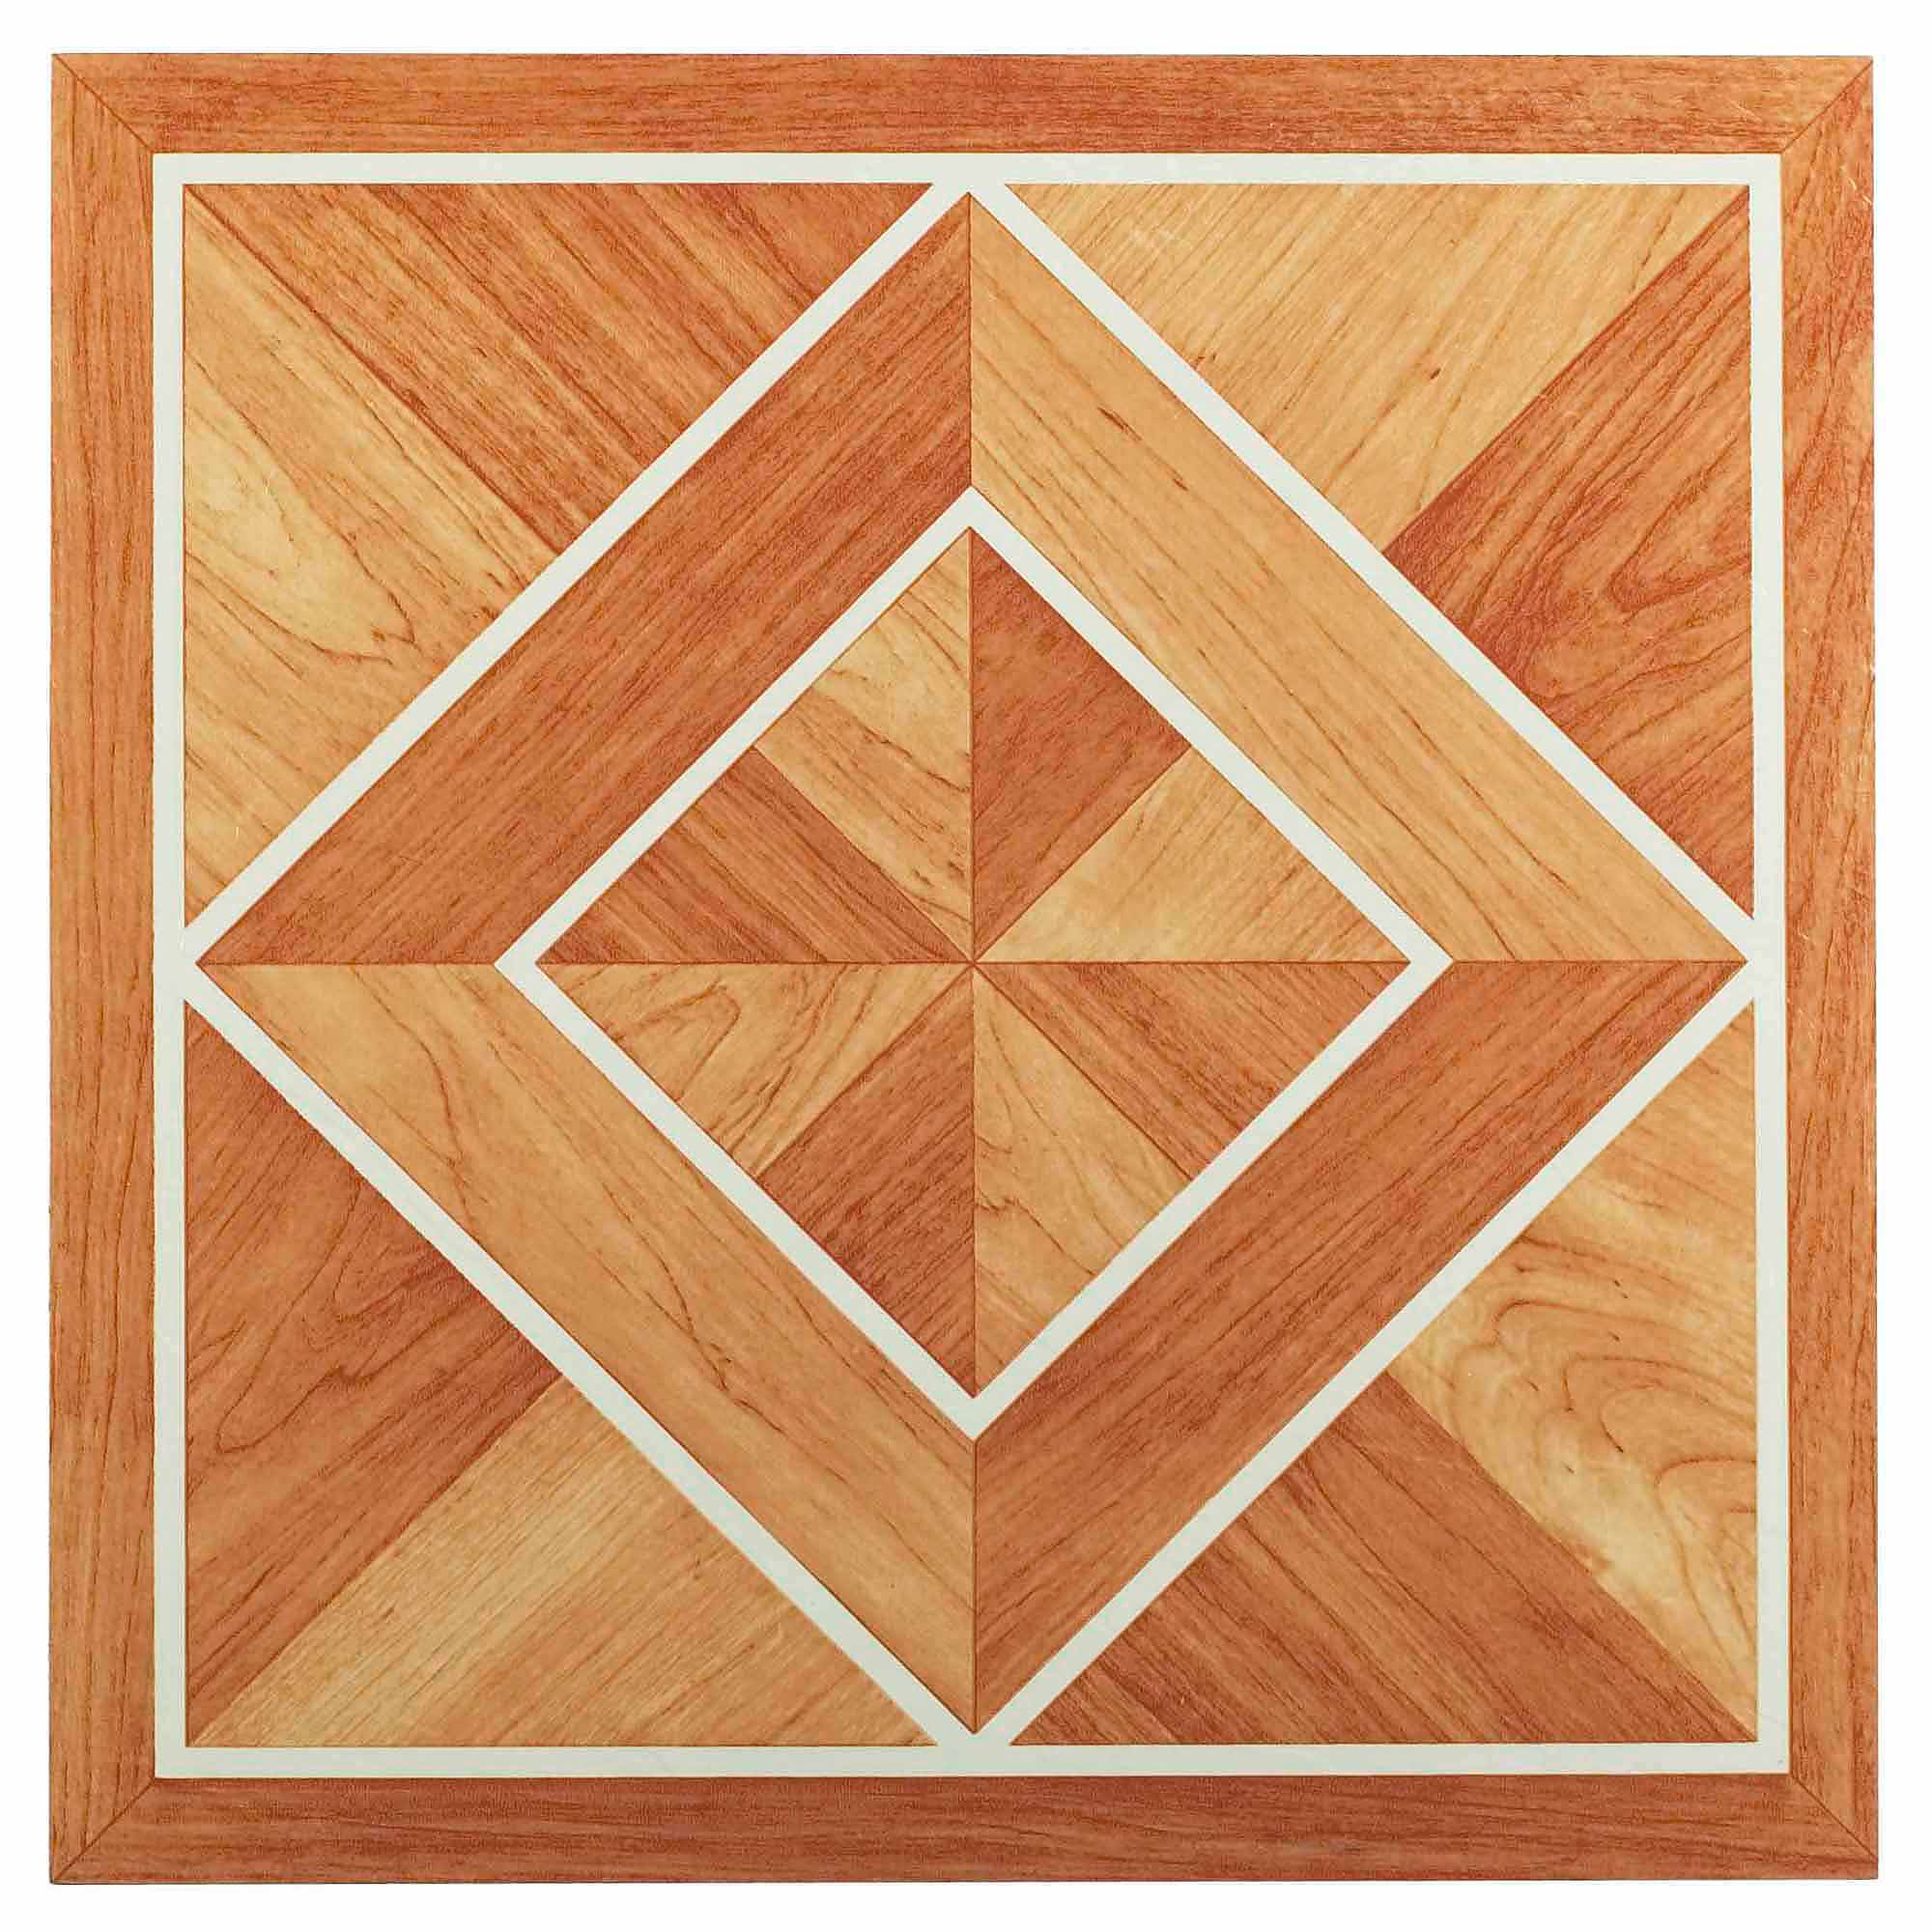 Nexus white border classic inlaid parquet 12x12 inch self adhesive nexus white border classic inlaid parquet 12x12 inch self adhesive vinyl floor tile 20 tiles20 sqft walmart doublecrazyfo Choice Image